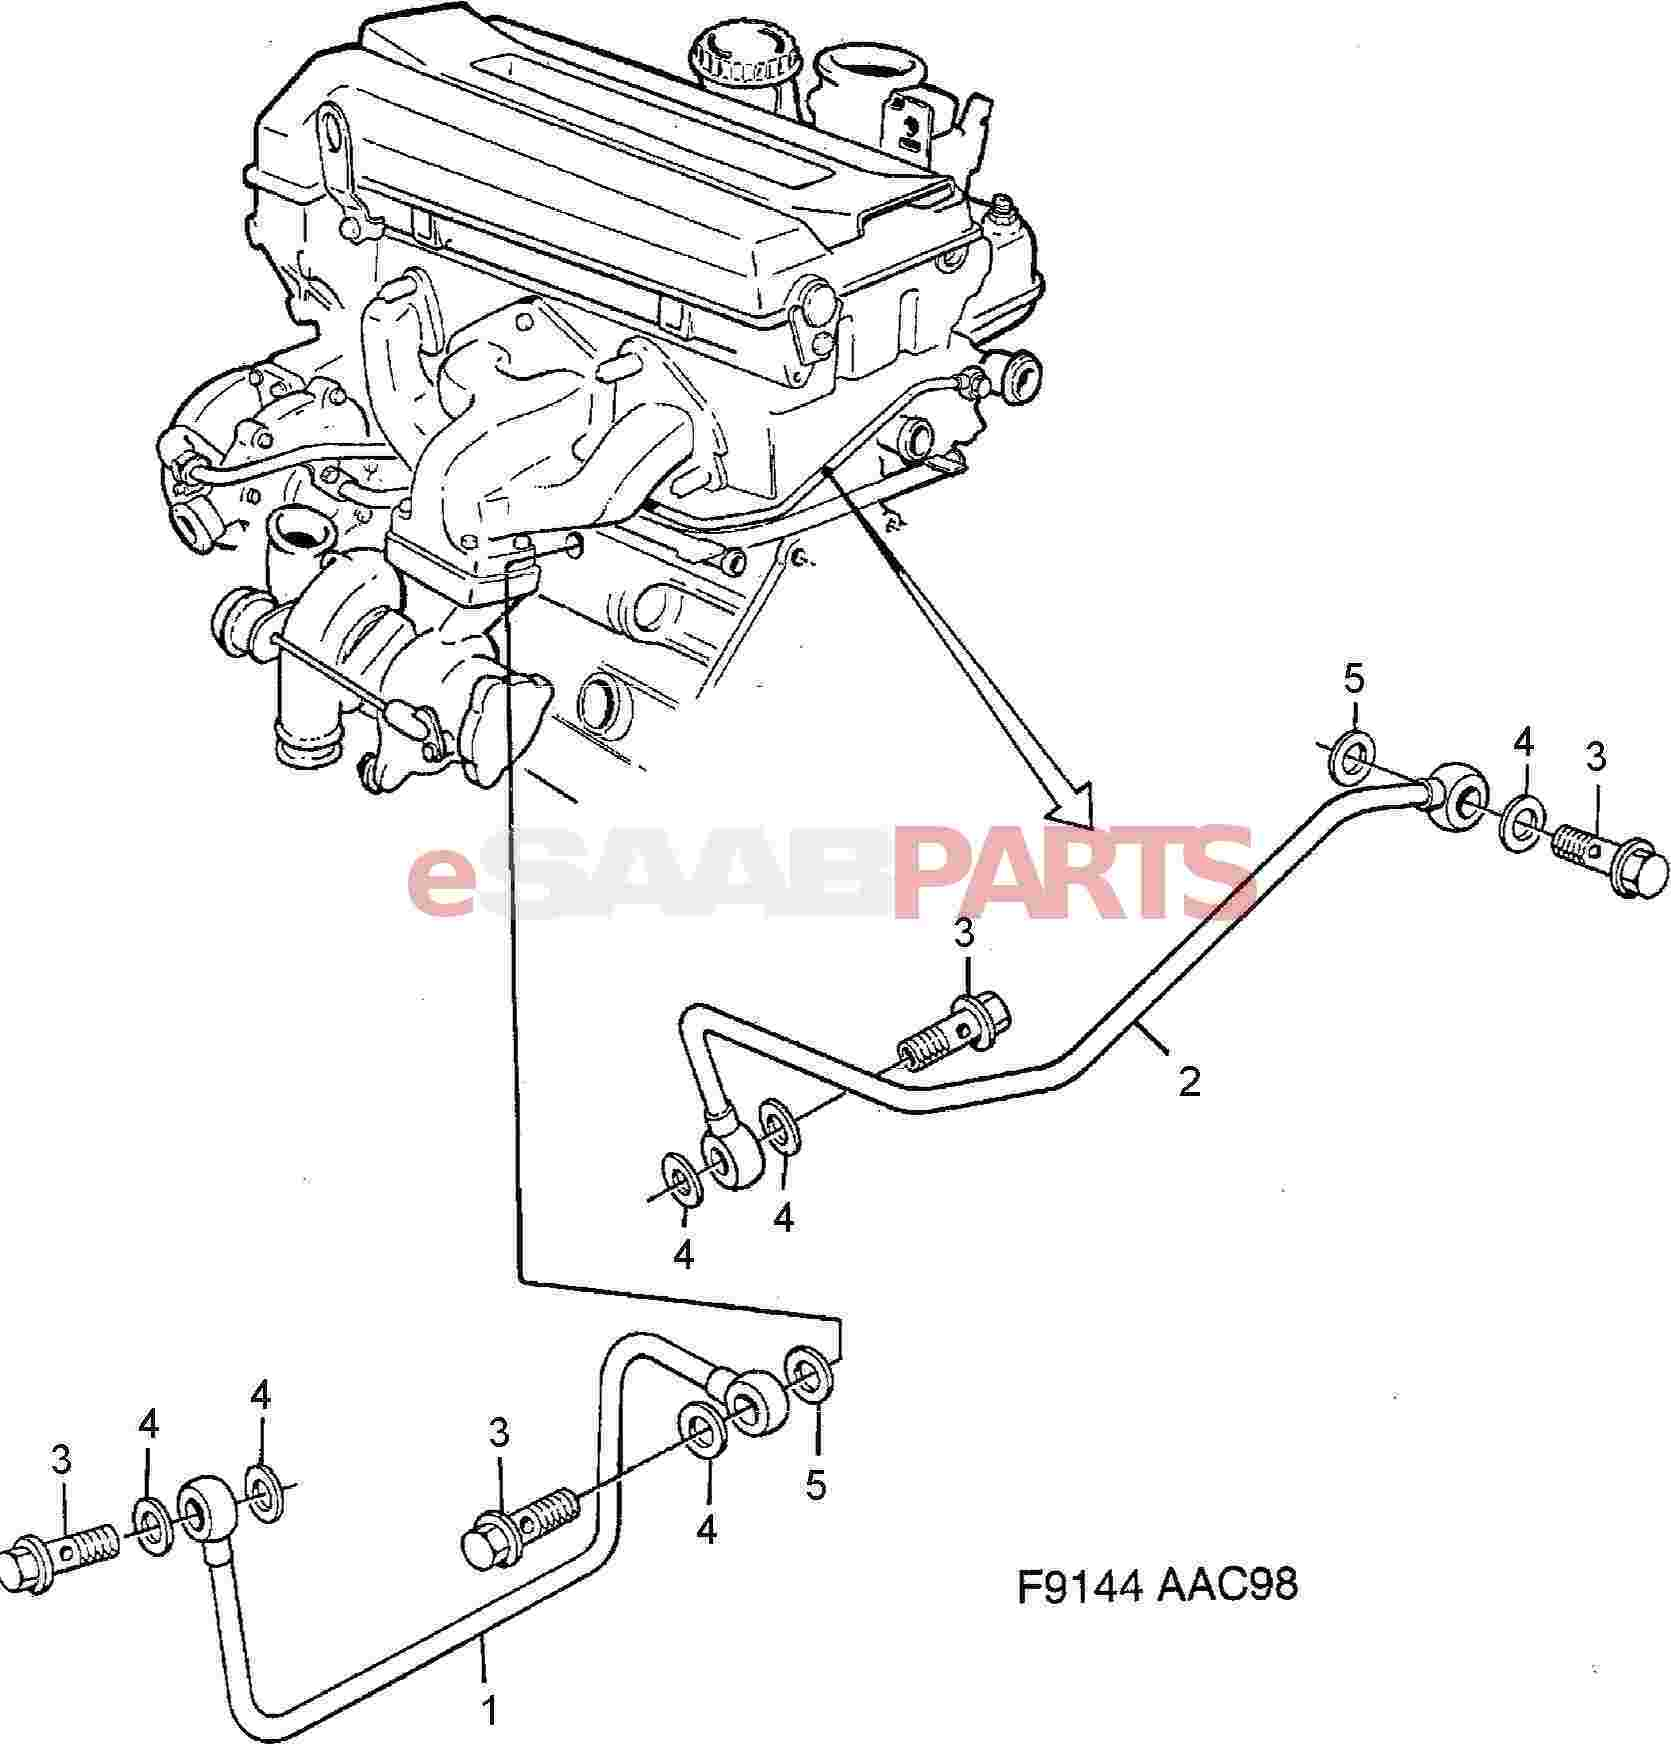 Saab Headlight Diagram Just Another Wiring Blog 9 3 Fuel Pump 1995 900 2005 Subaru Legacy 9000